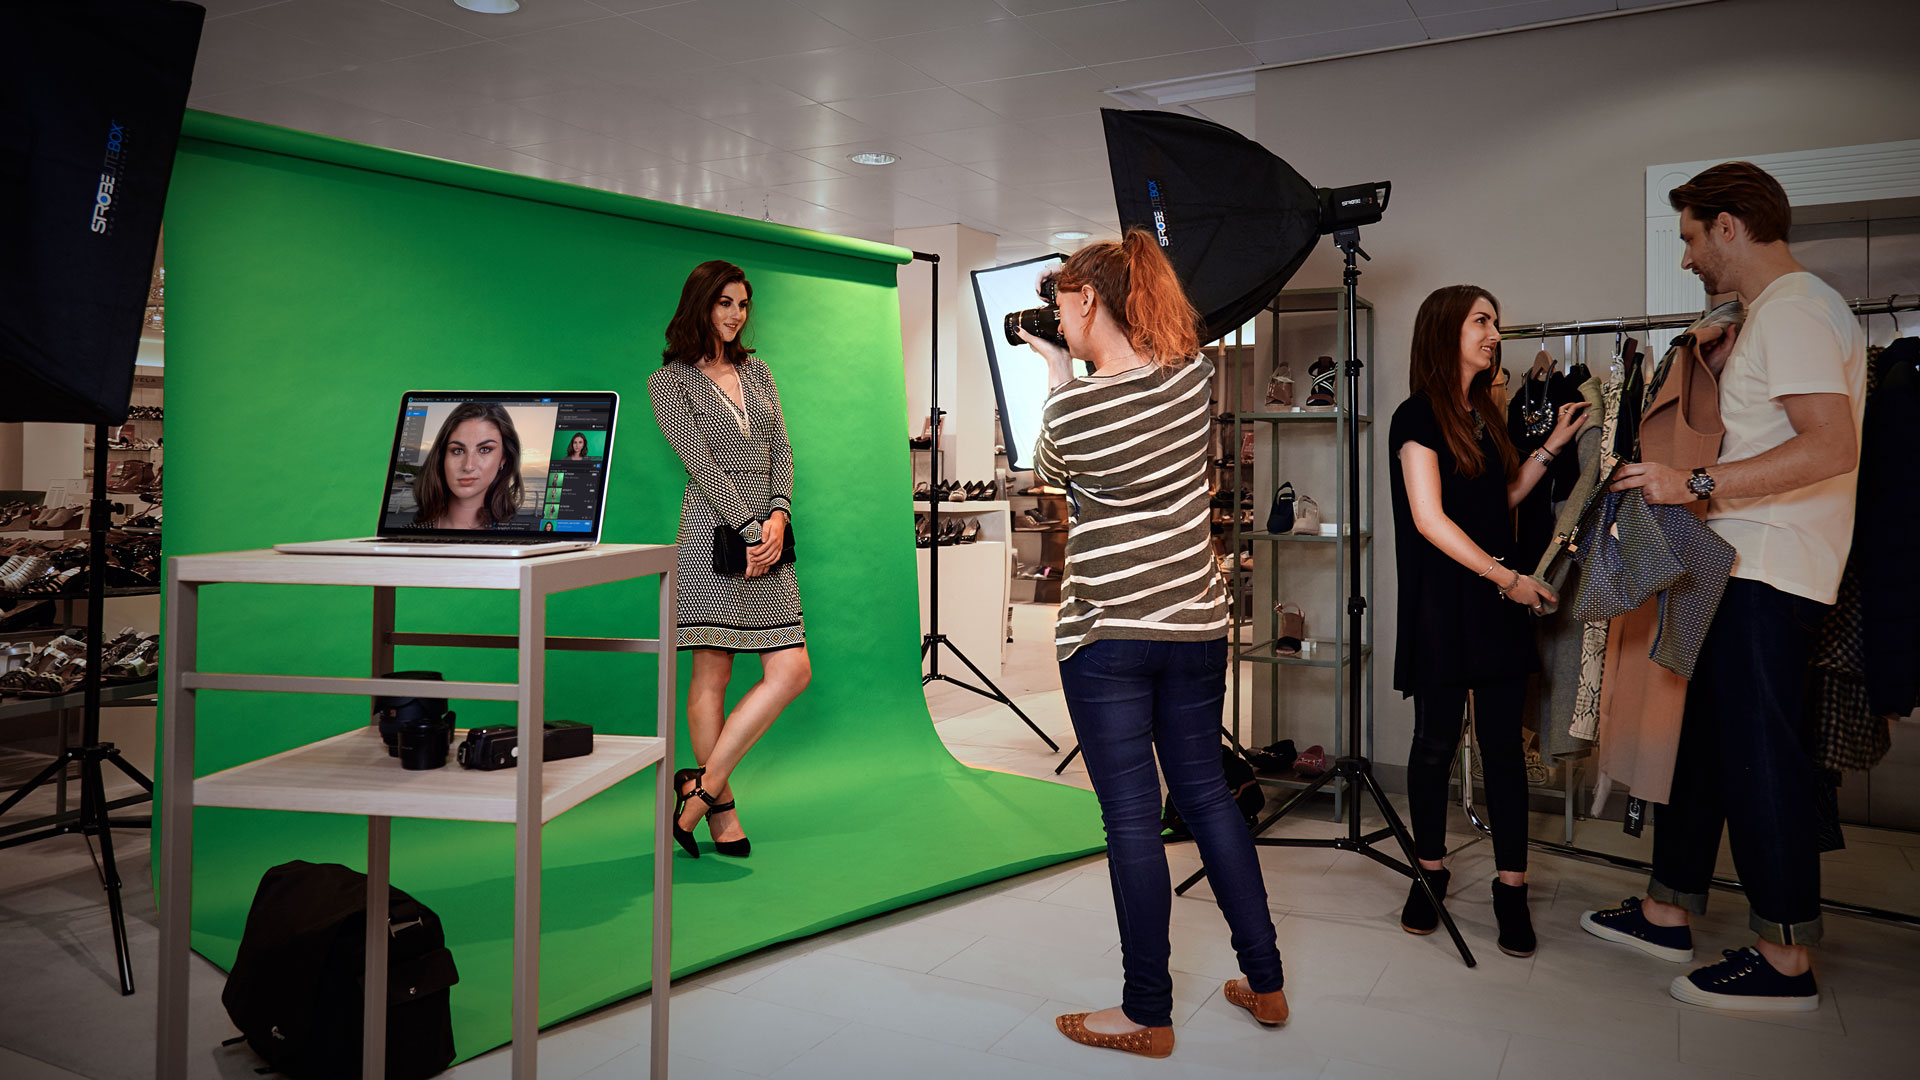 PhotoKey 8 Pro: The world's leading green screen software